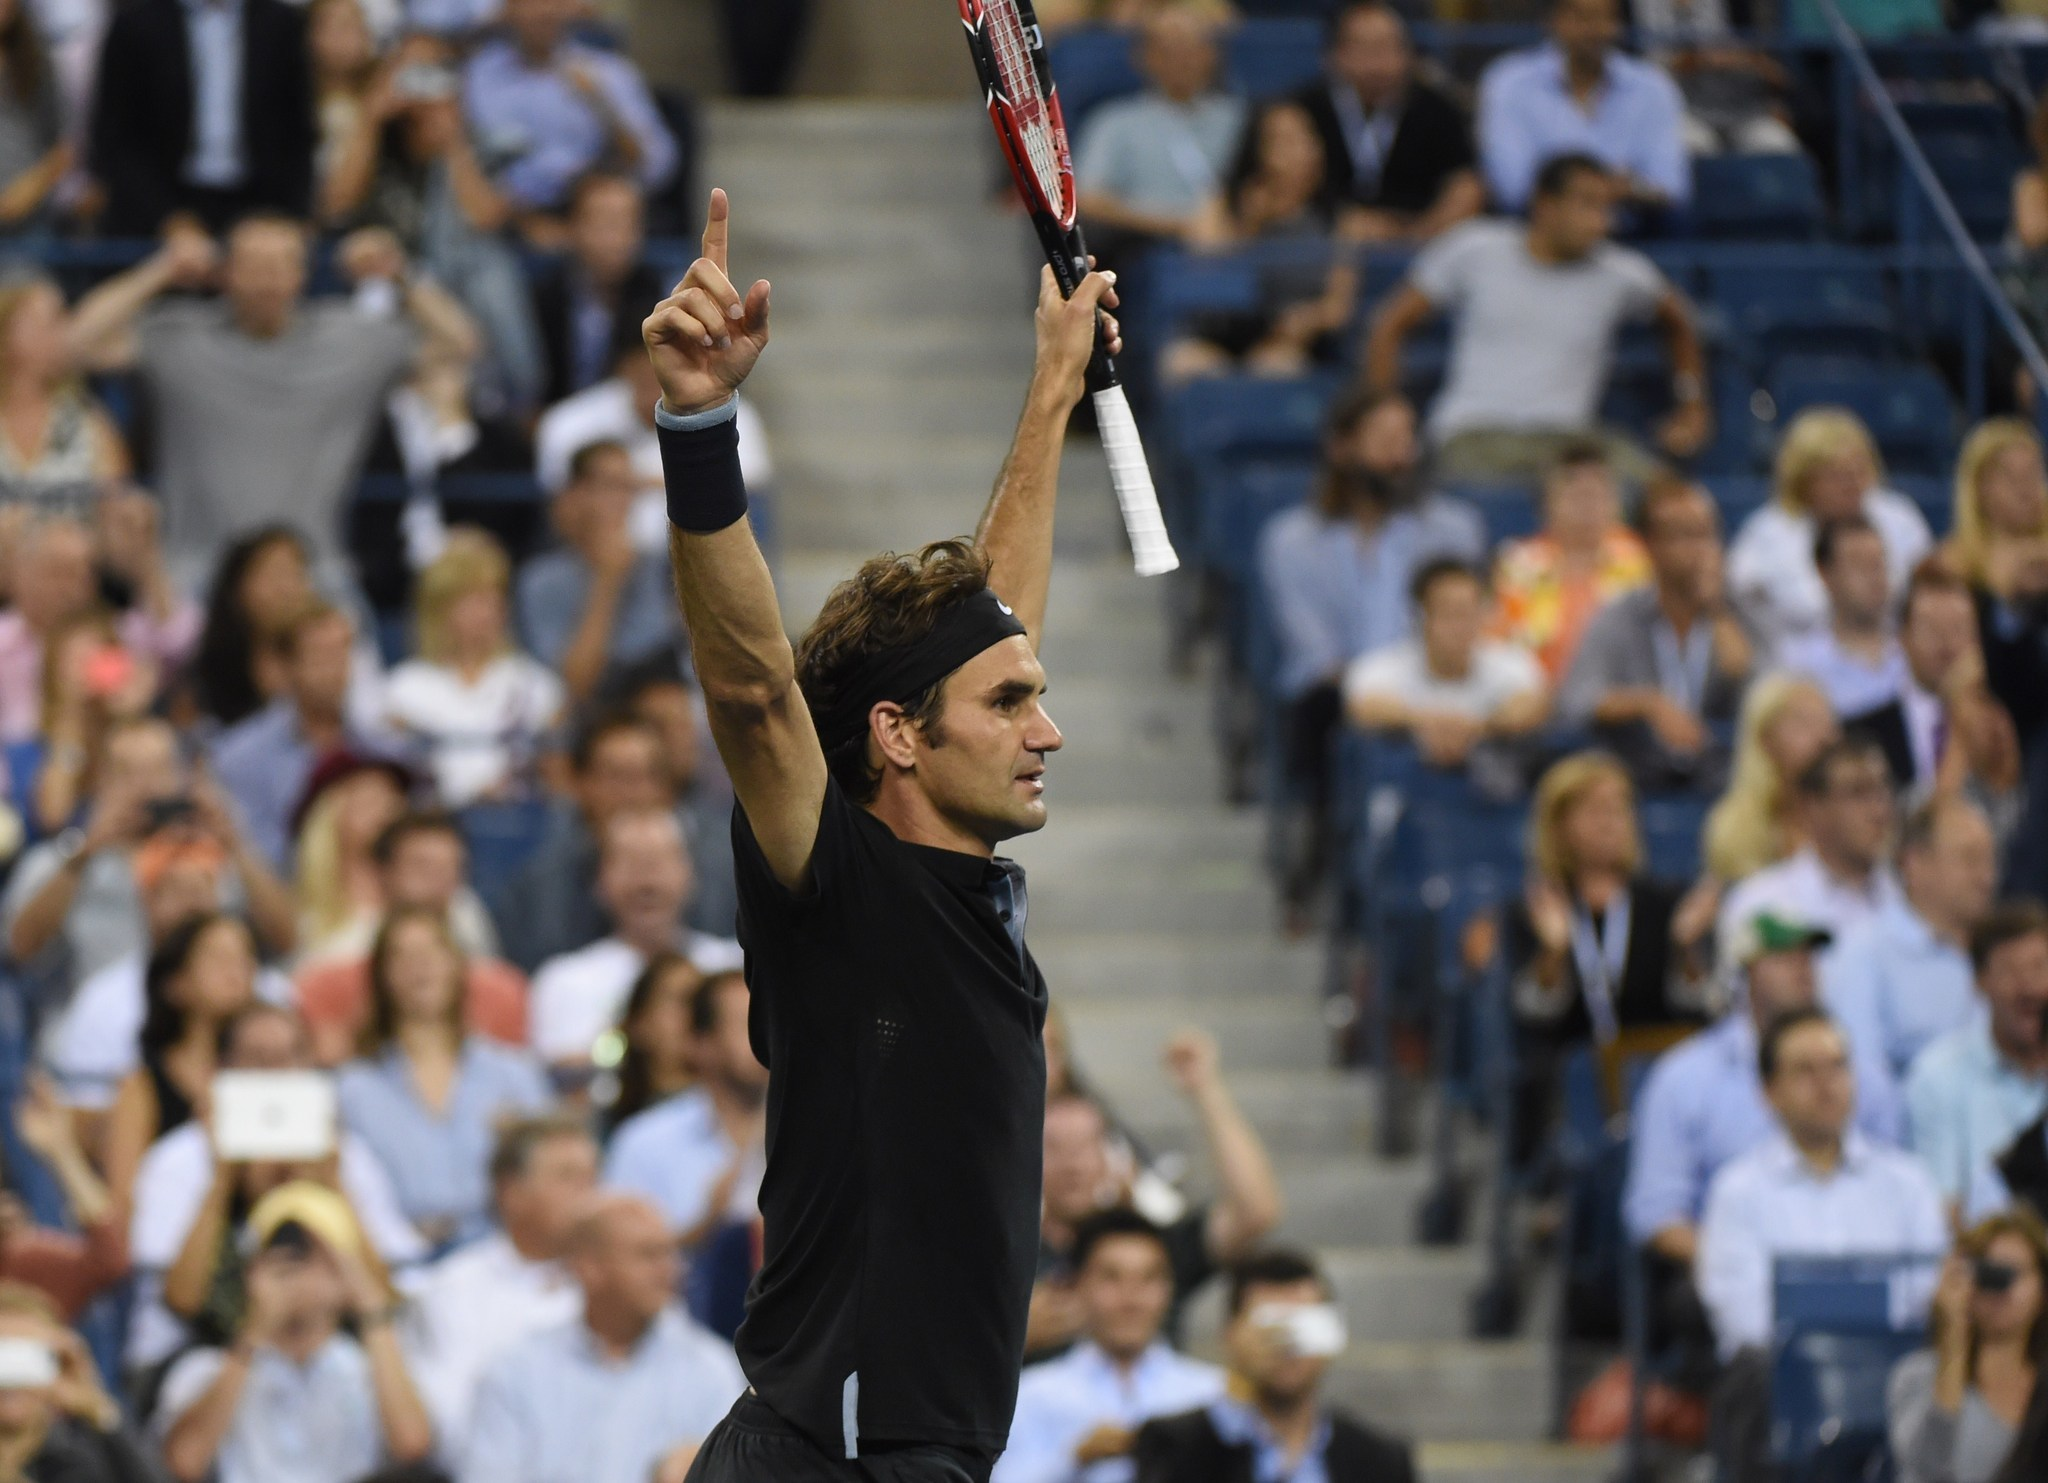 Federer comes back from two sets down to reach semi-finals